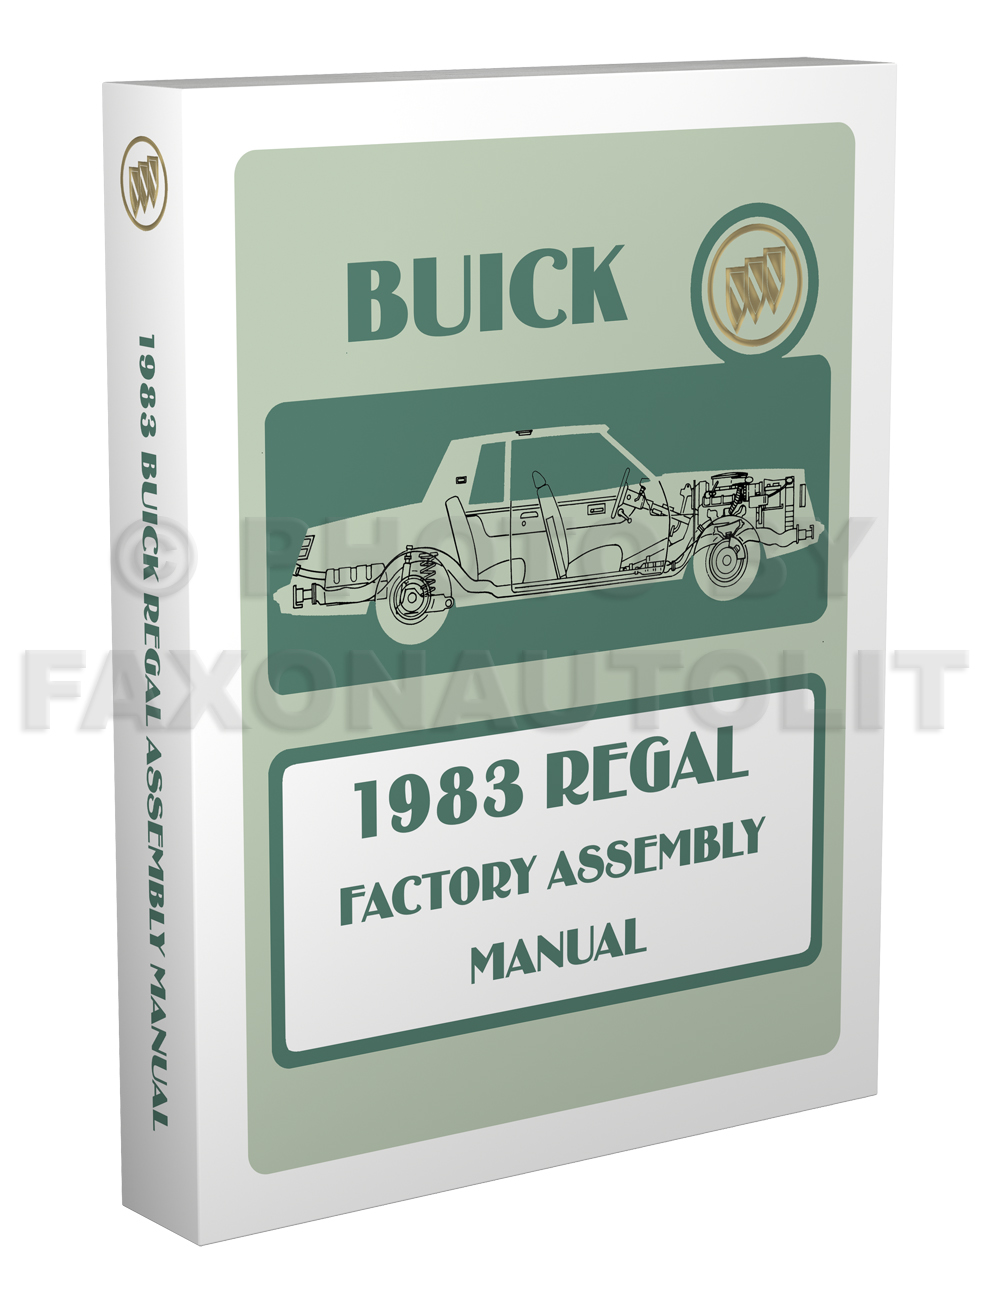 1983 Buick Regal Factory Assembly Manual Reprint